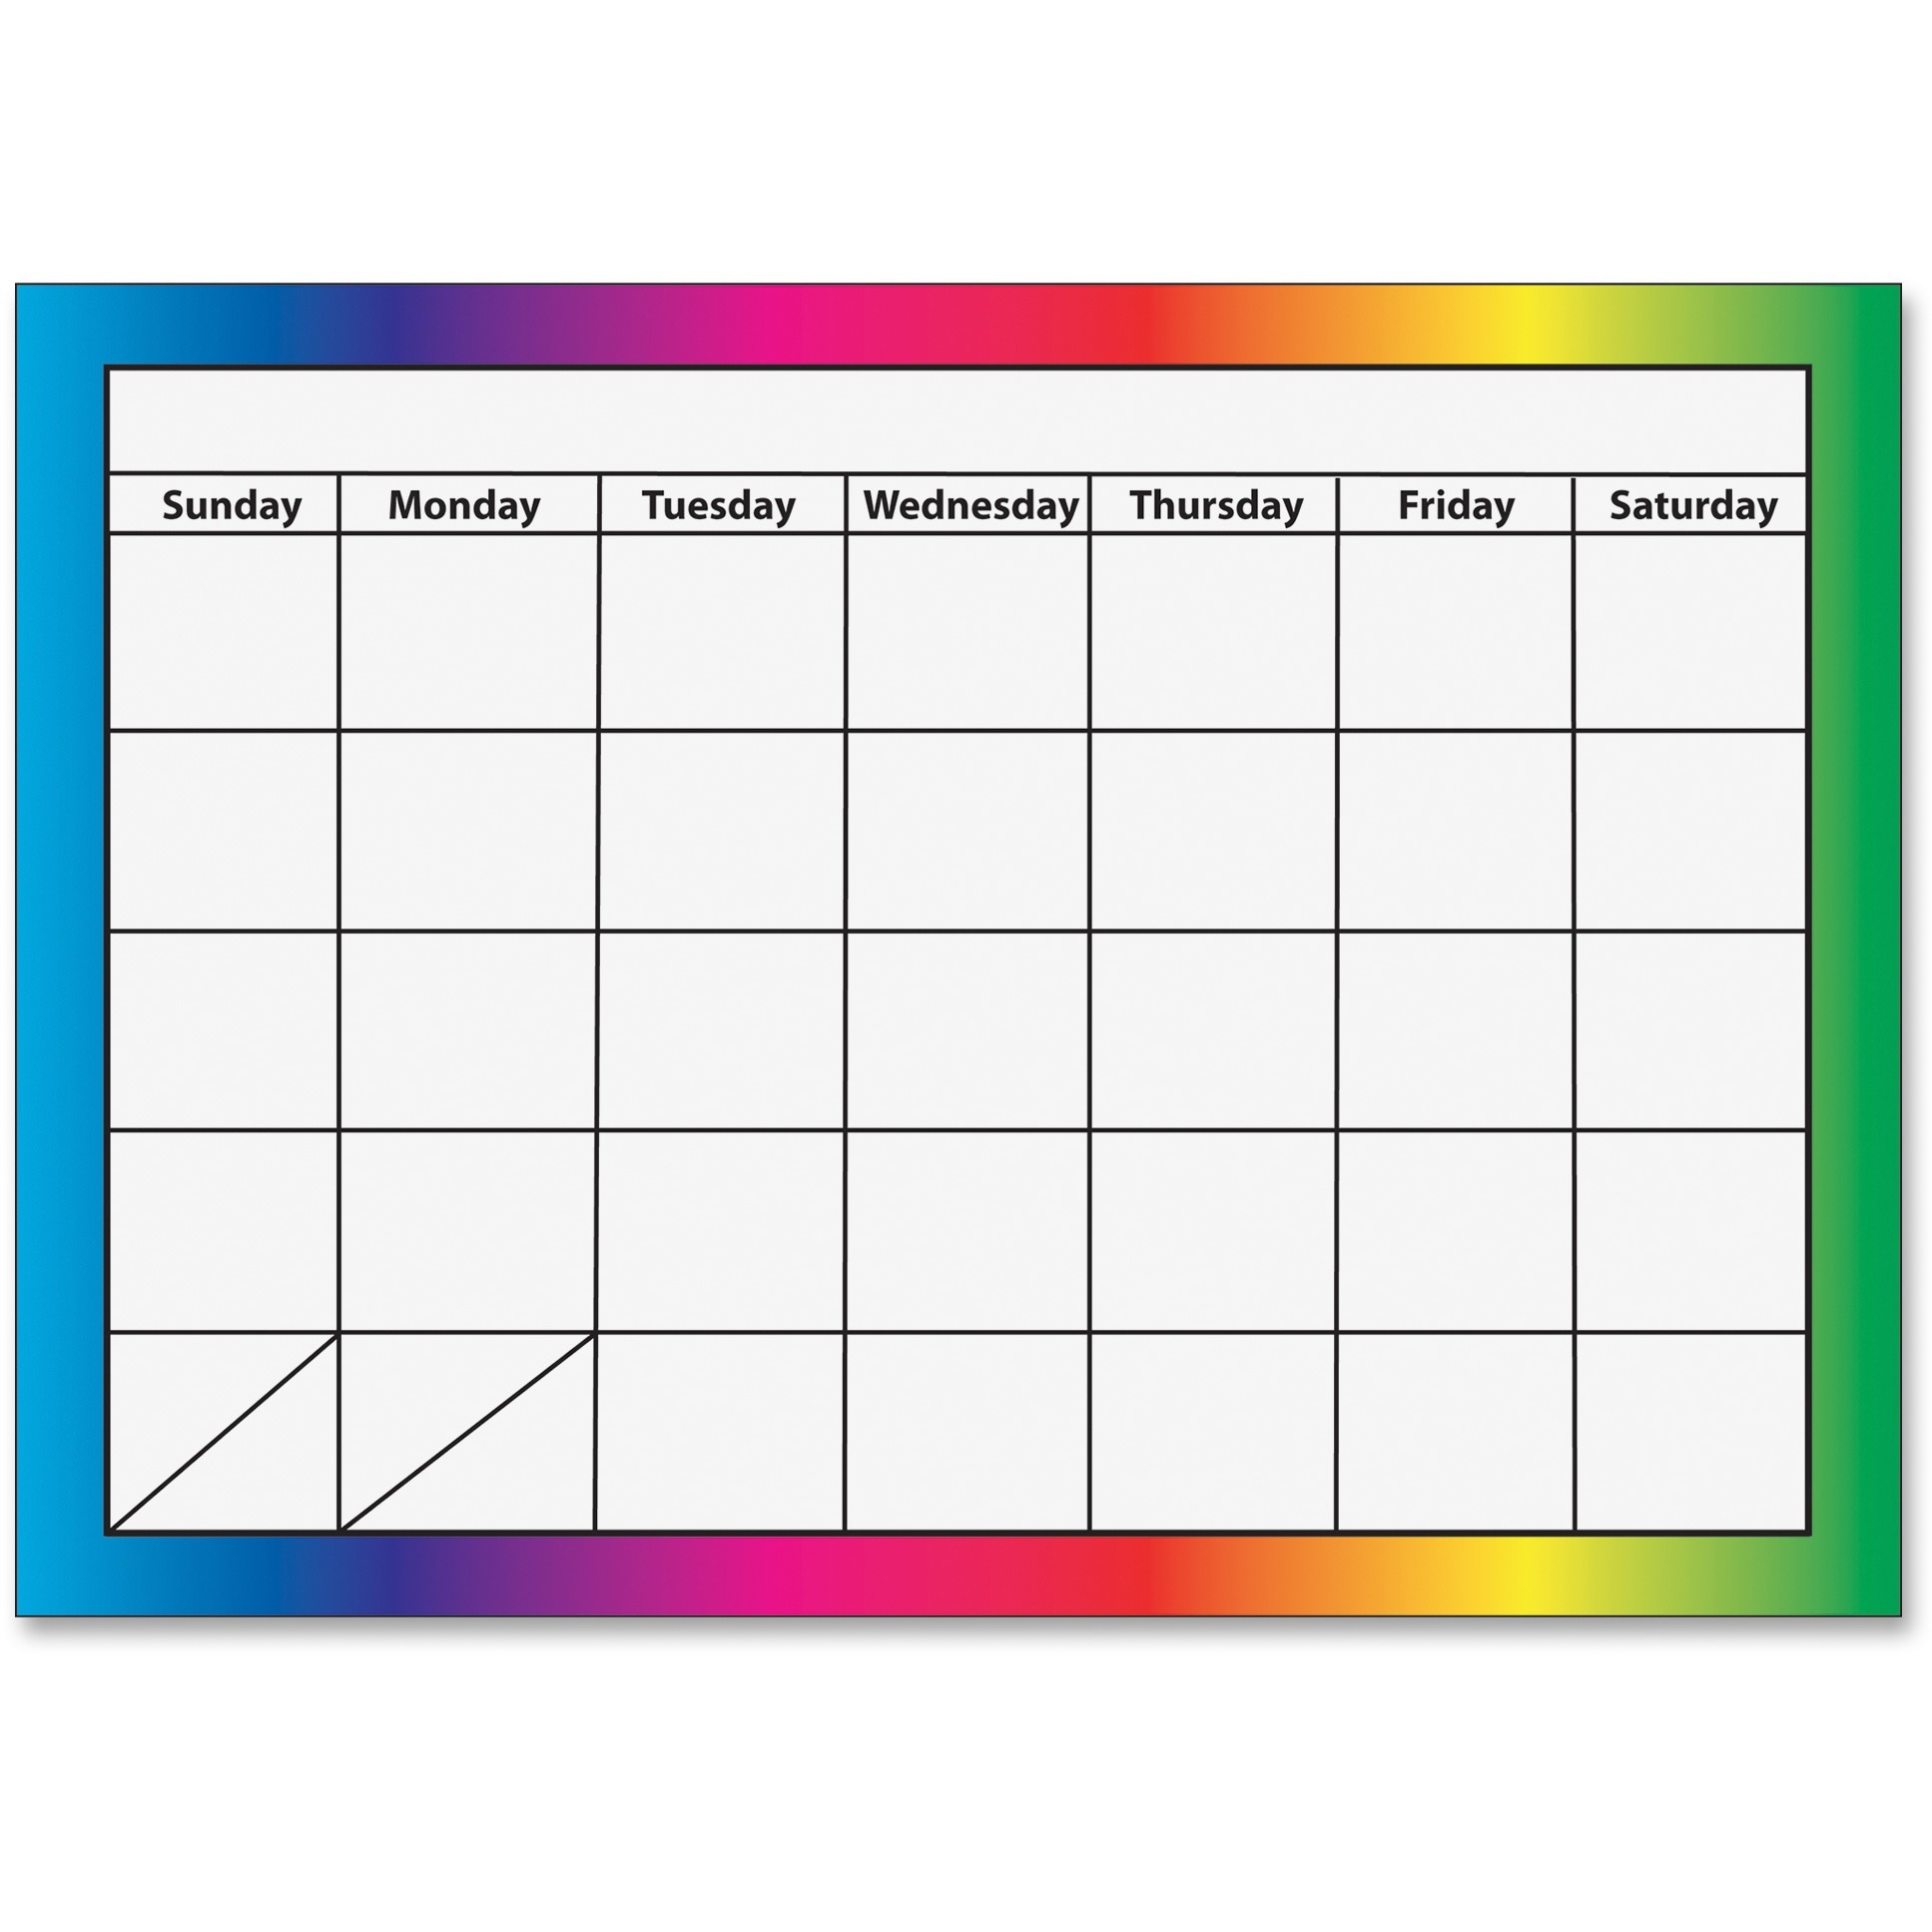 Ashley 1-month Dry Erase Magnetic Calendar, Multicolor